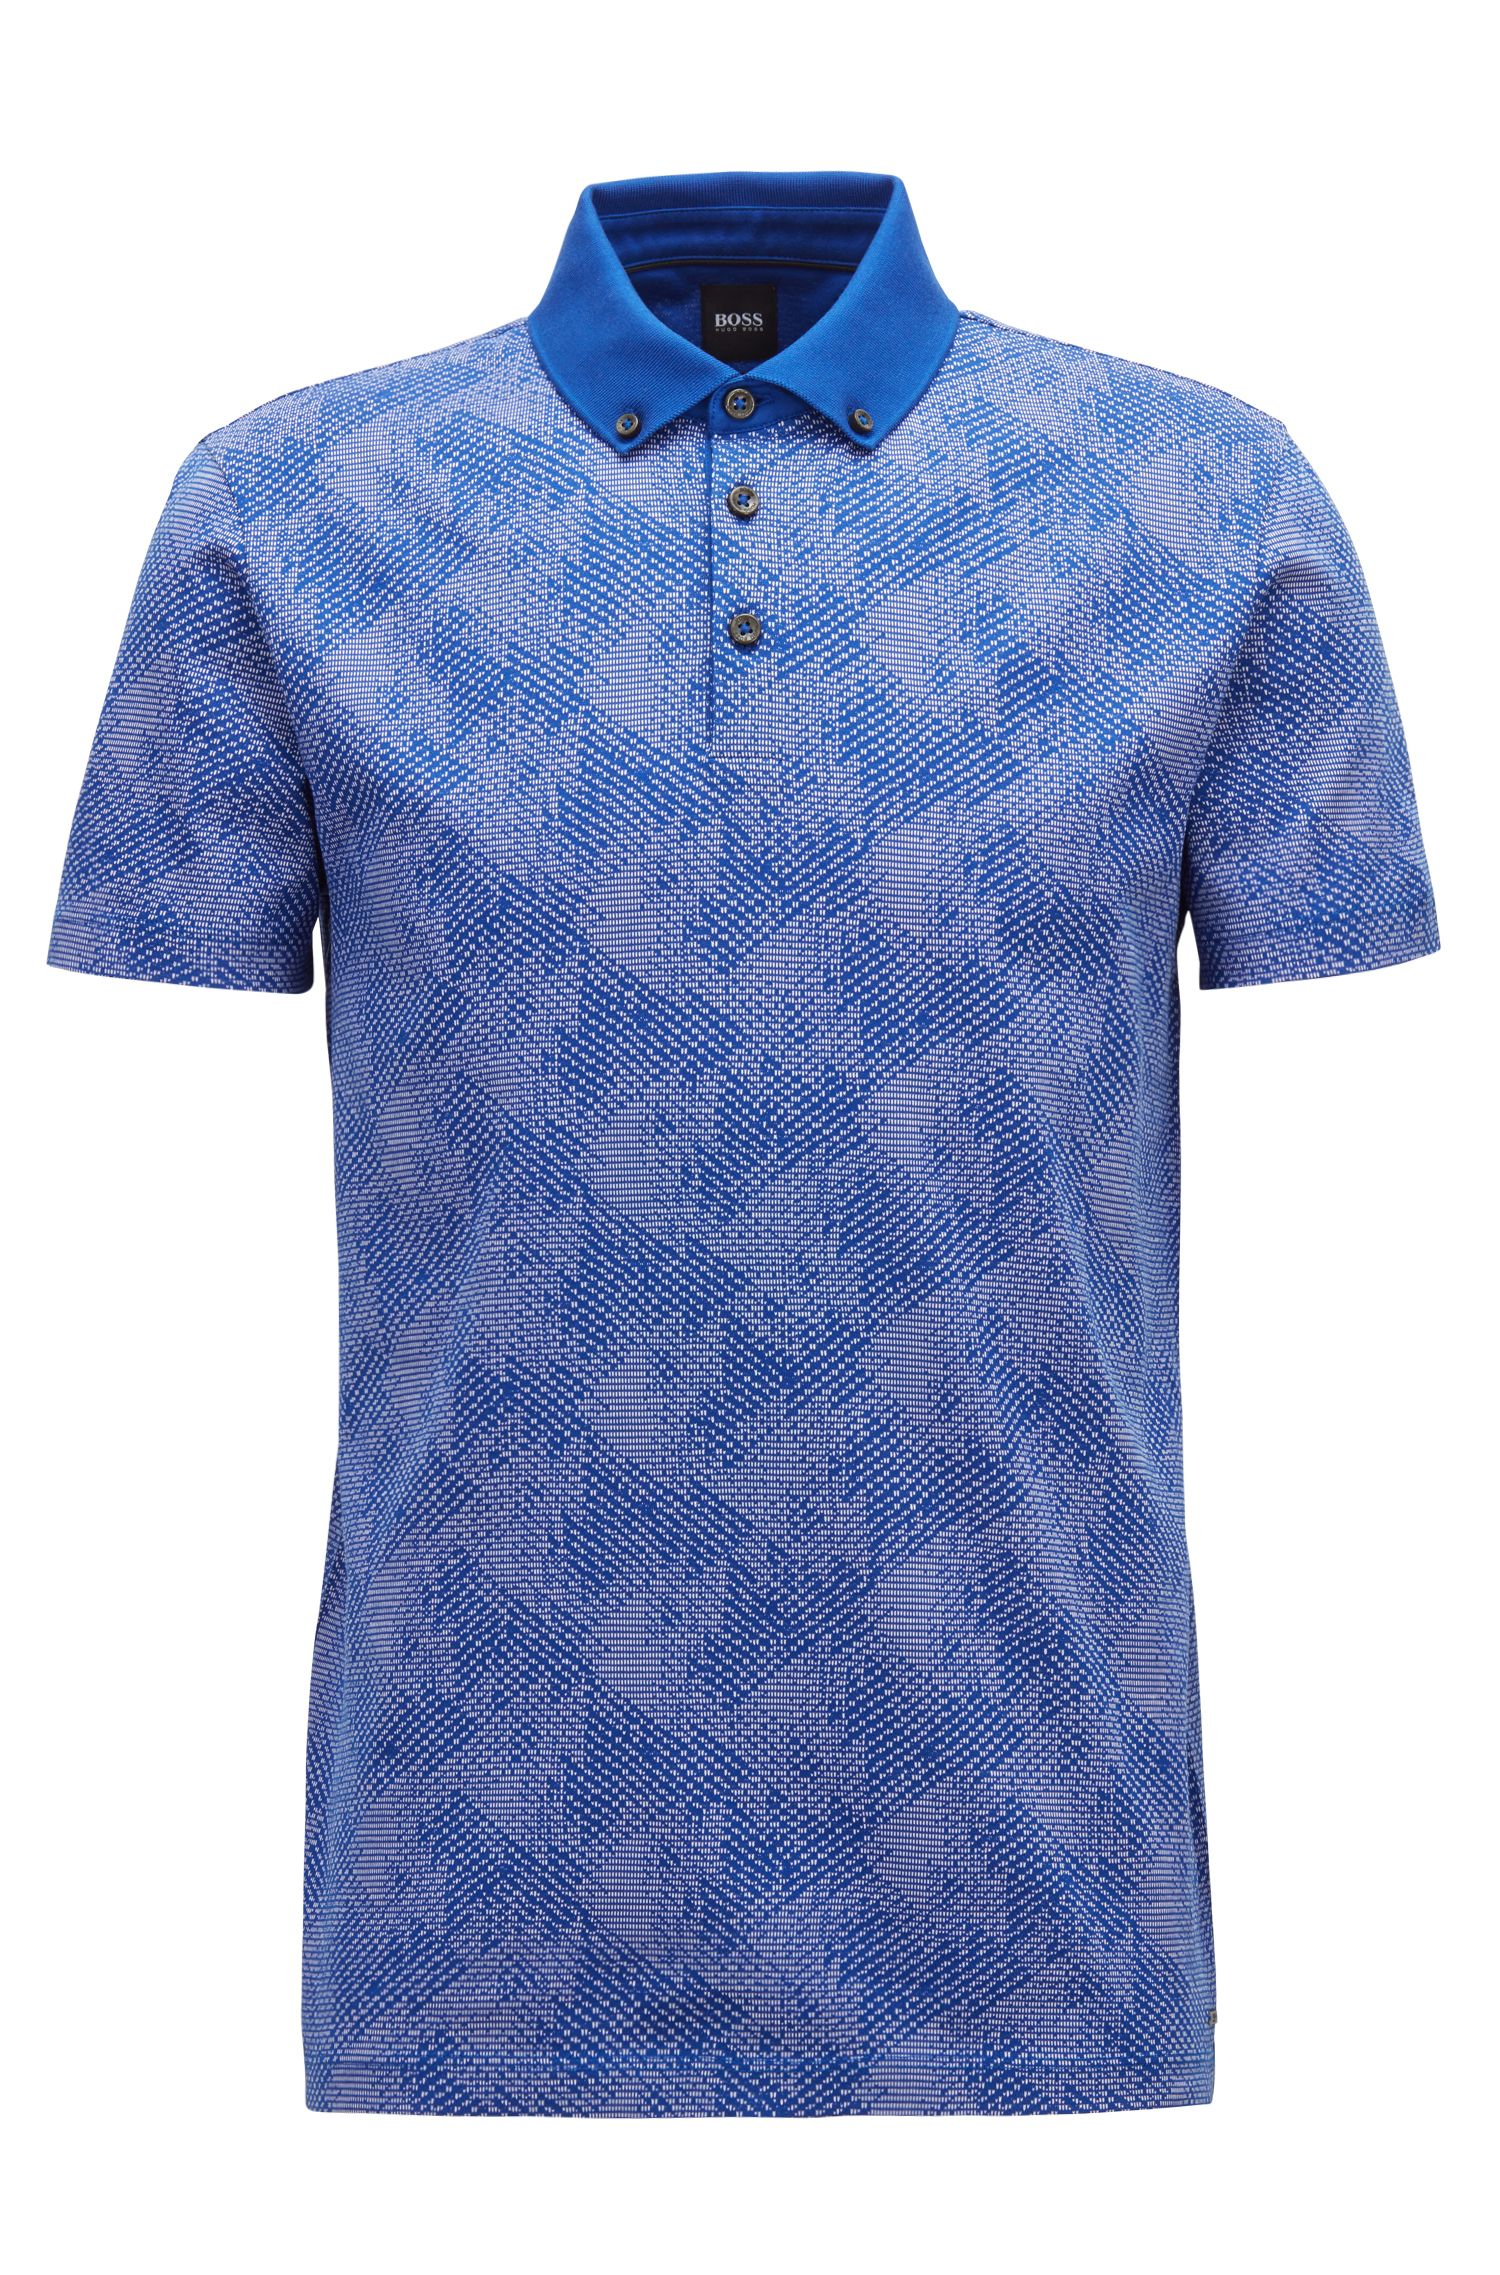 Slim-fit polo shirt in climbing-inspired cotton jacquard